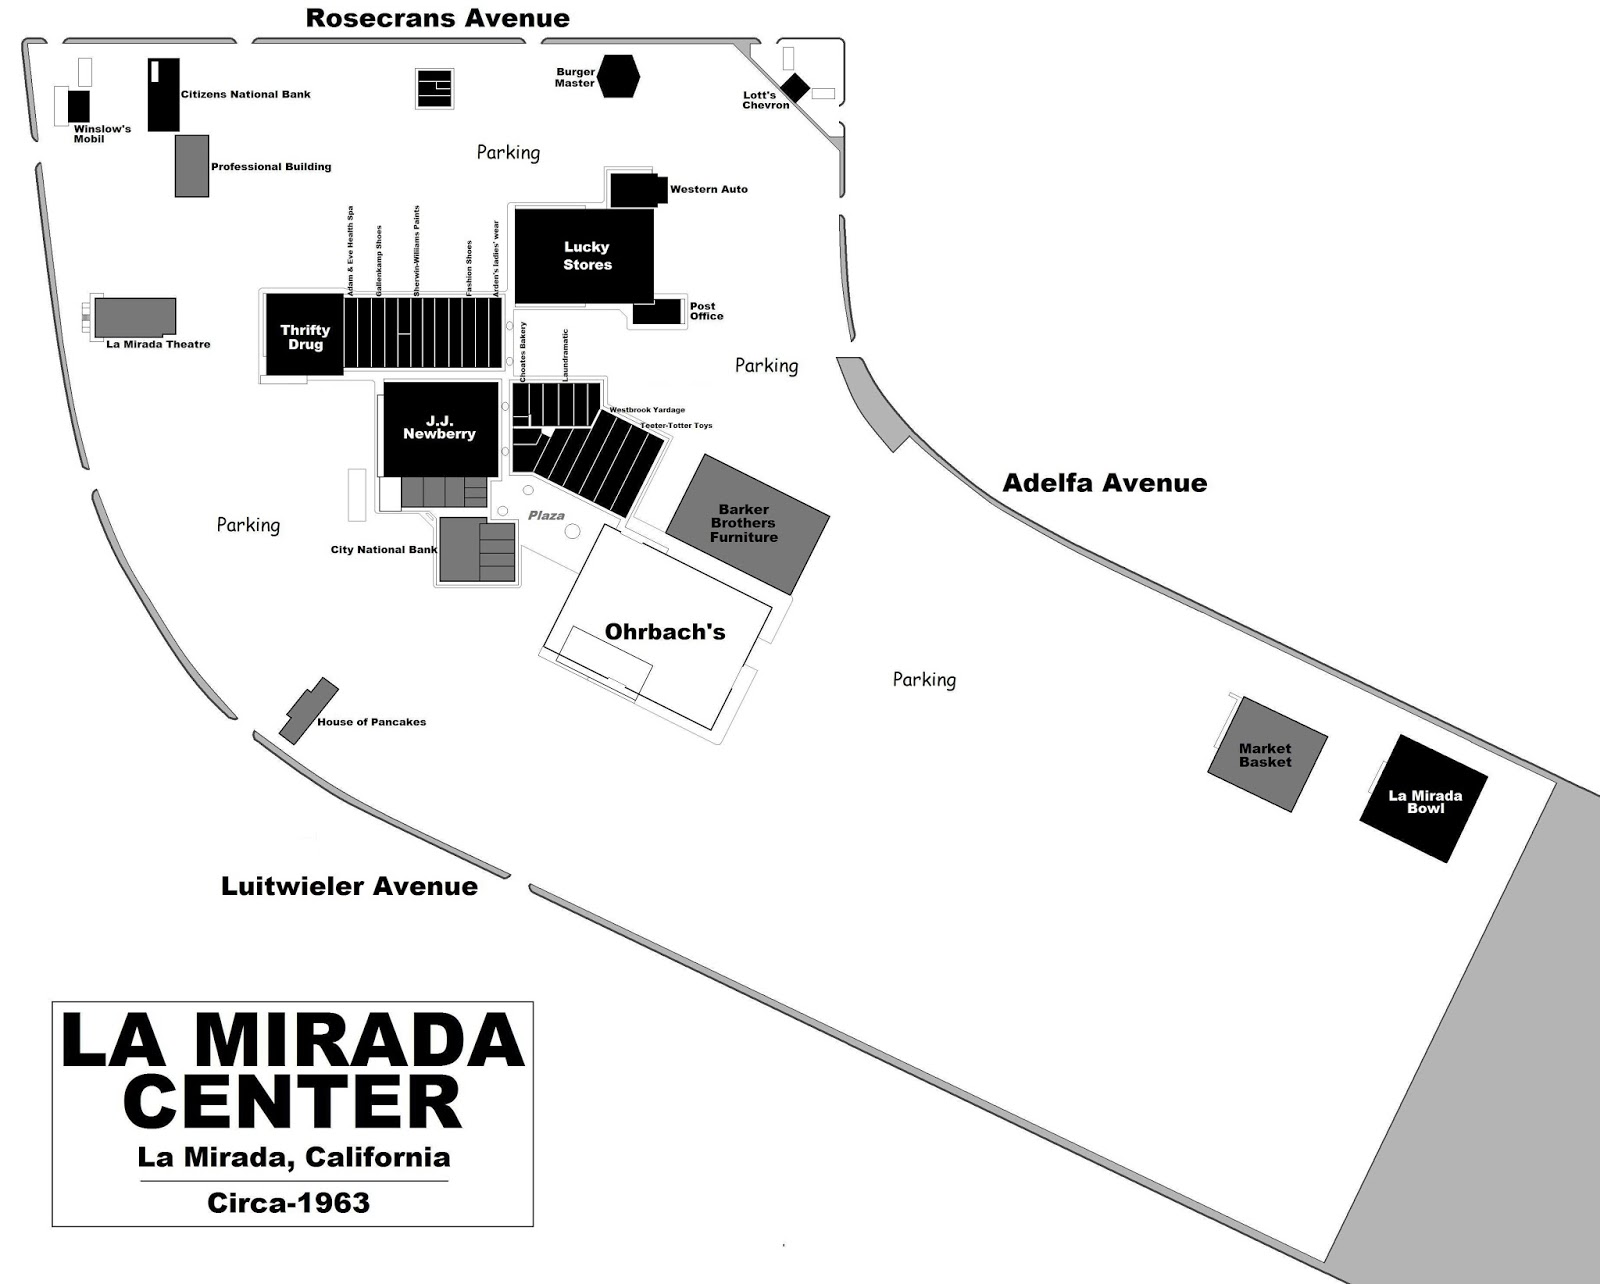 A Circa U002763 Physical Layout Of LA MIRADA CENTER. By This Time, There Were  Two Supermarkets, A 5 U0026 Dime, Drug Store, Furniture Store, Bowling Alley,  ...